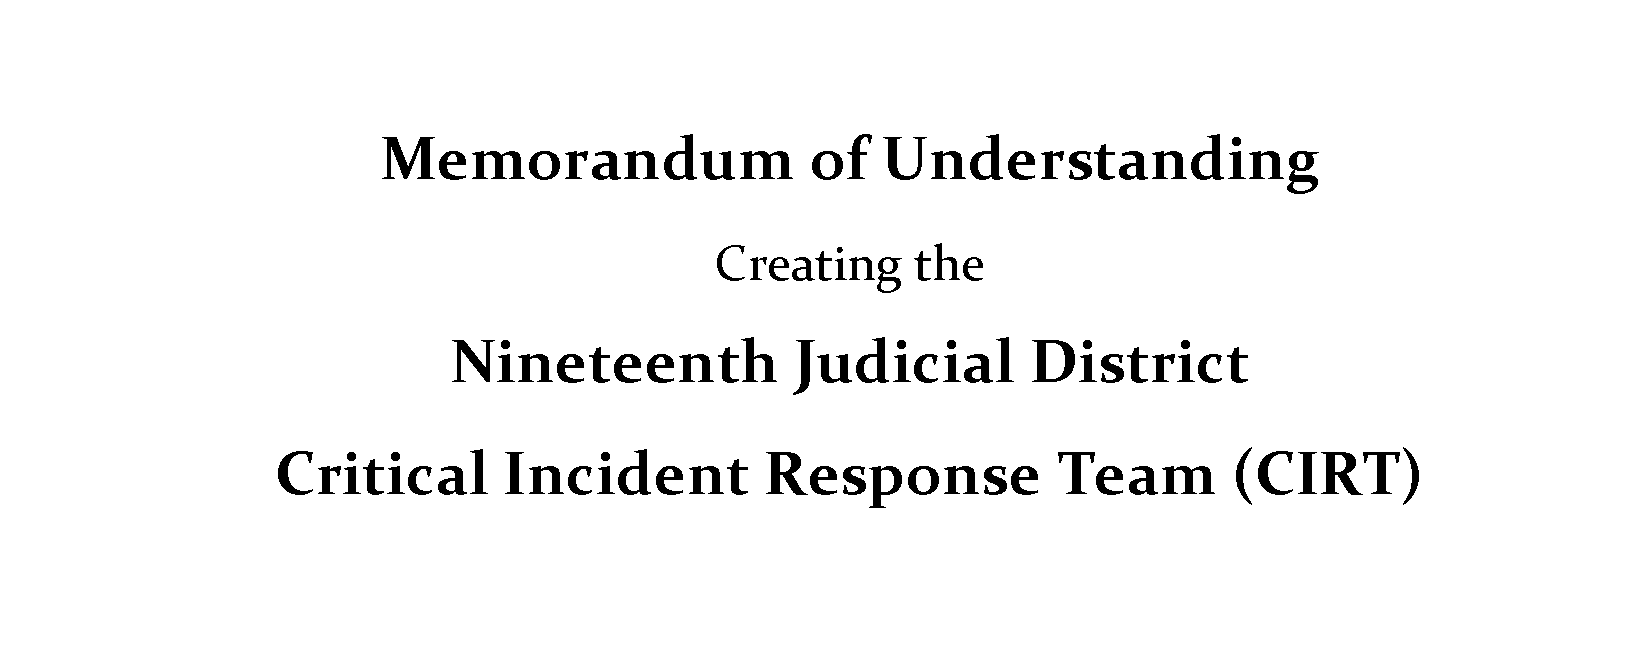 memorandum Of Understanding Critical Incident Response Team